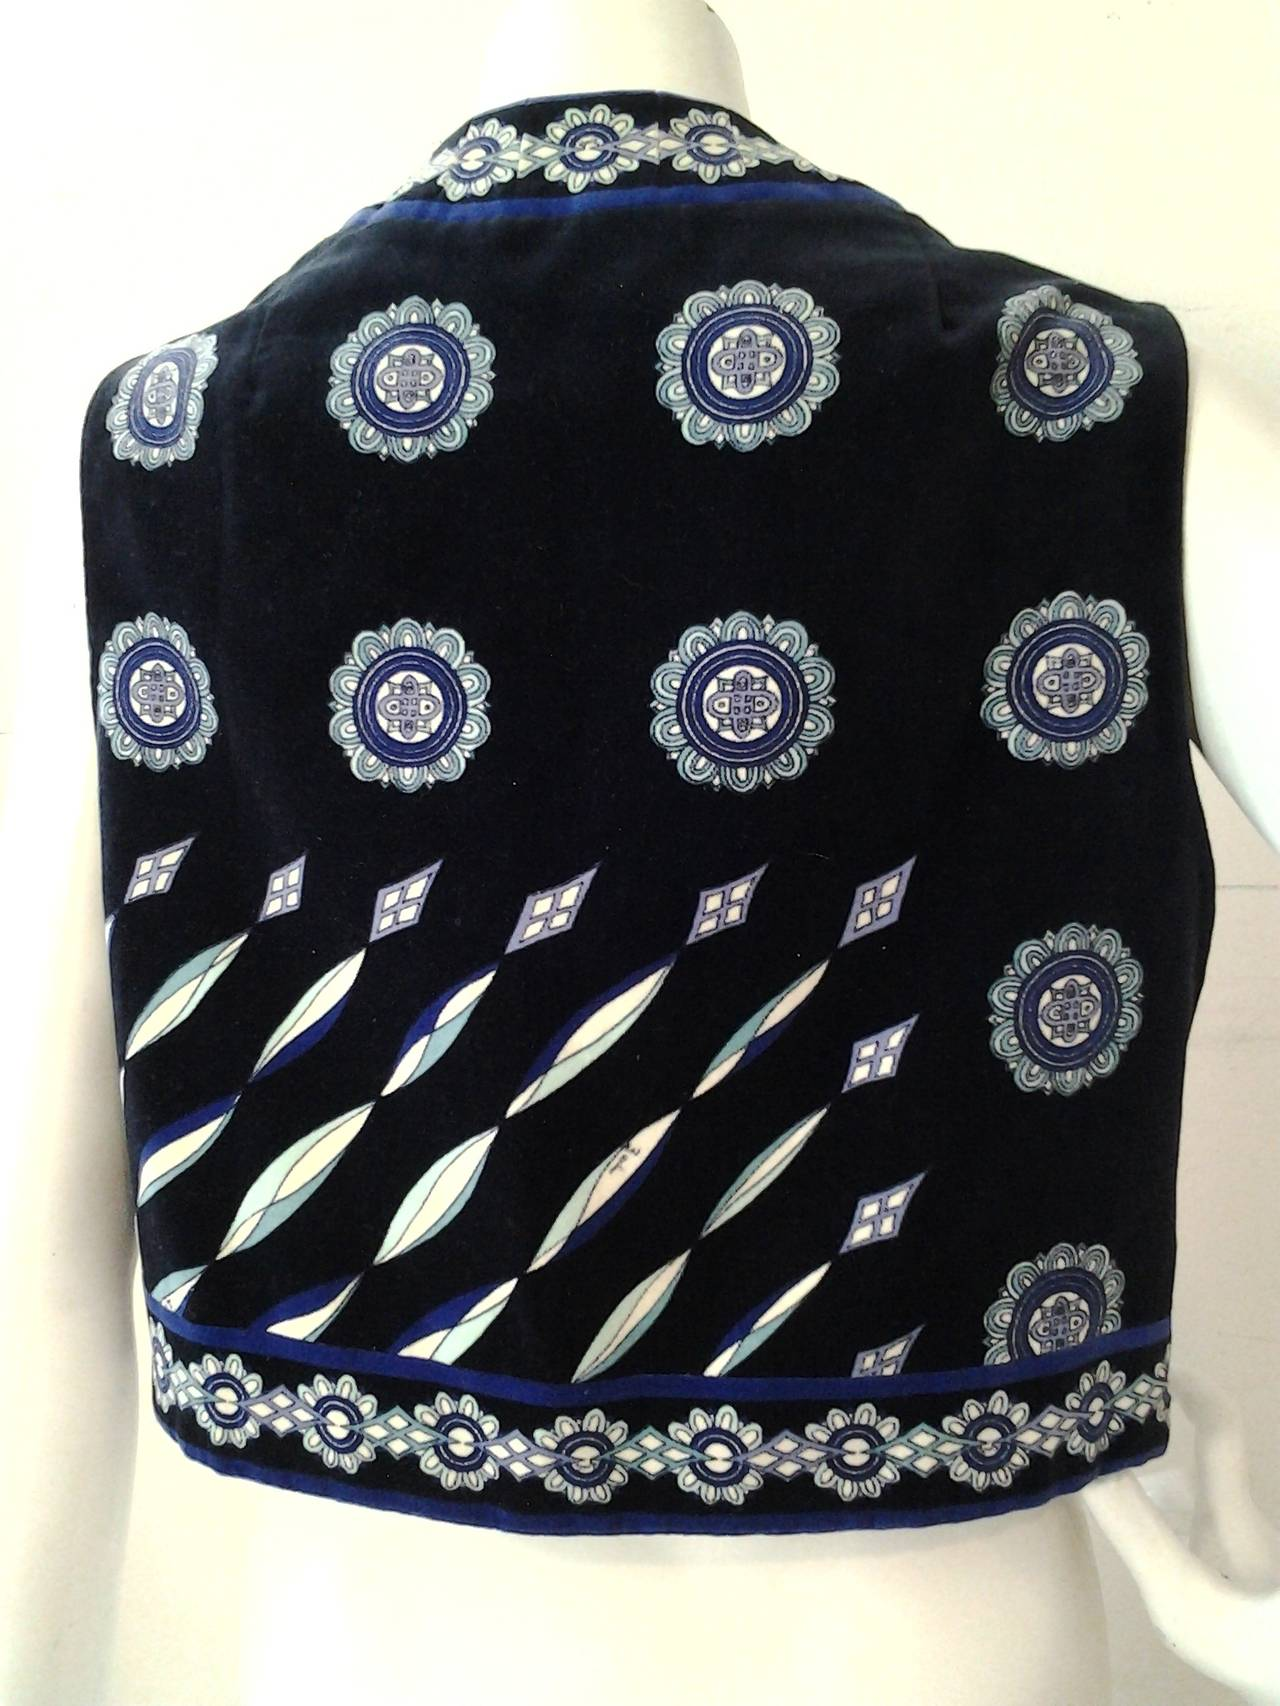 1960s Emilio Pucci Cotton Velveteen Mod Vest In Blues, Black and White 3